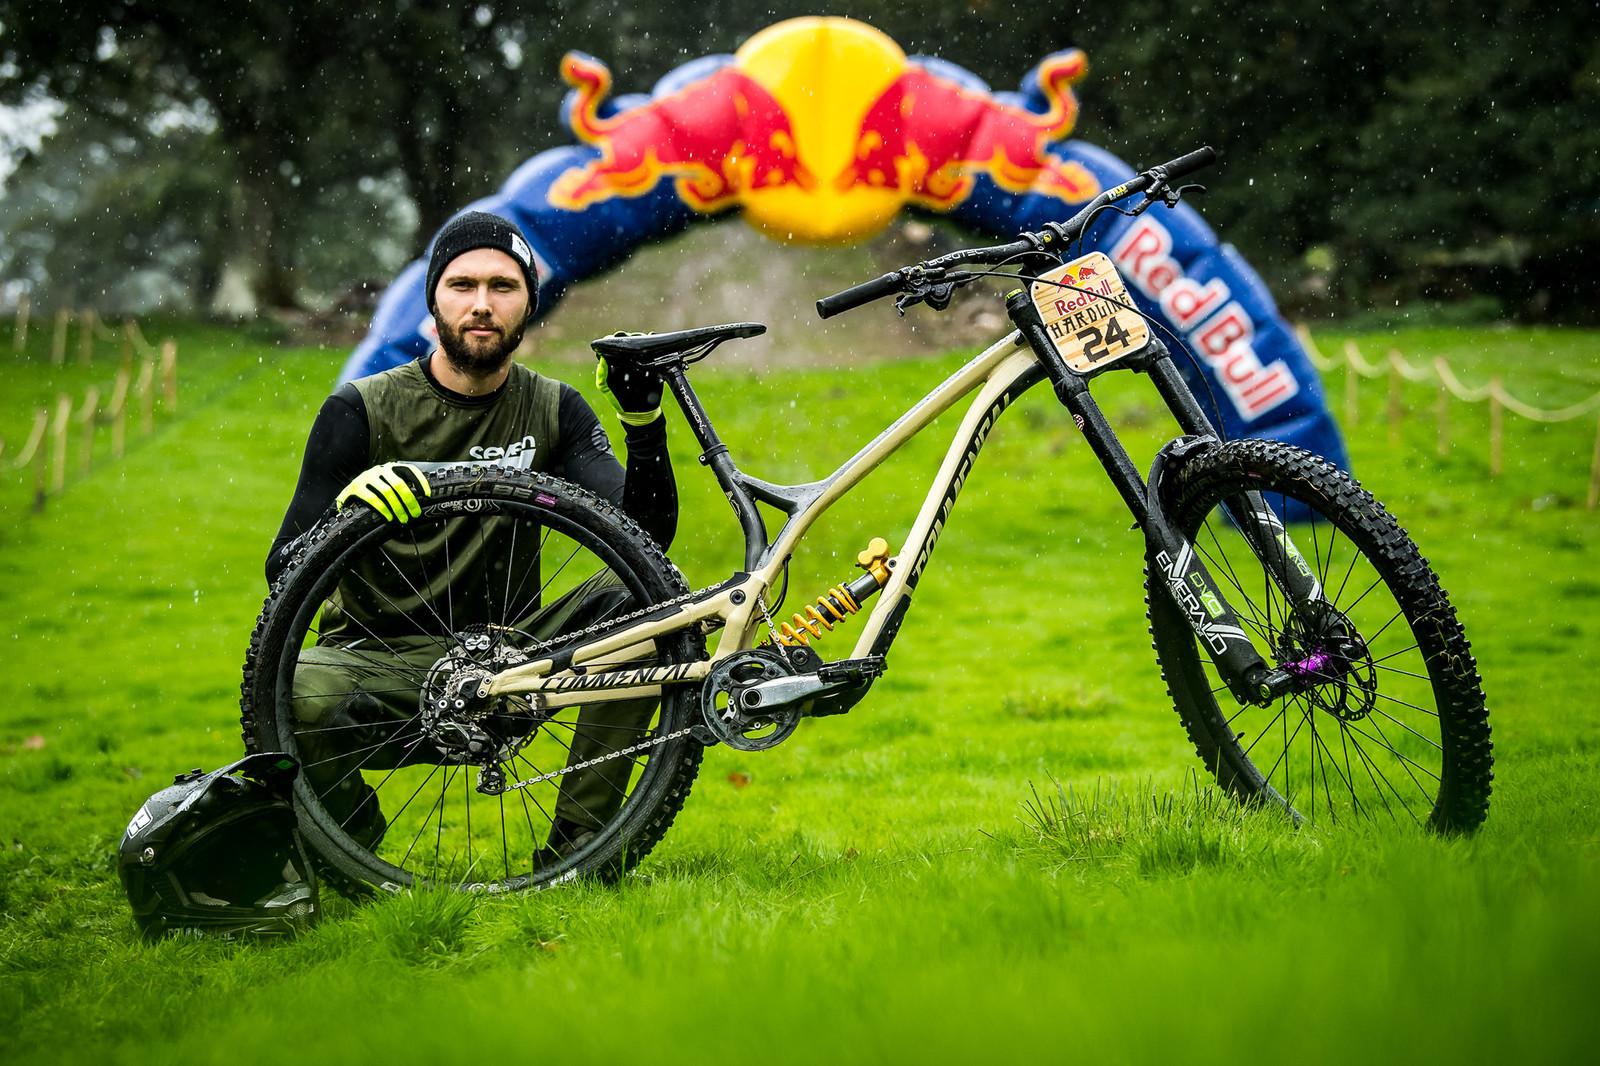 scar Harnstrom and His Commencal Supreme DH - Red Bull Hardline 2018 Riders and Bikes - Mountain Biking Pictures - Vital MTB